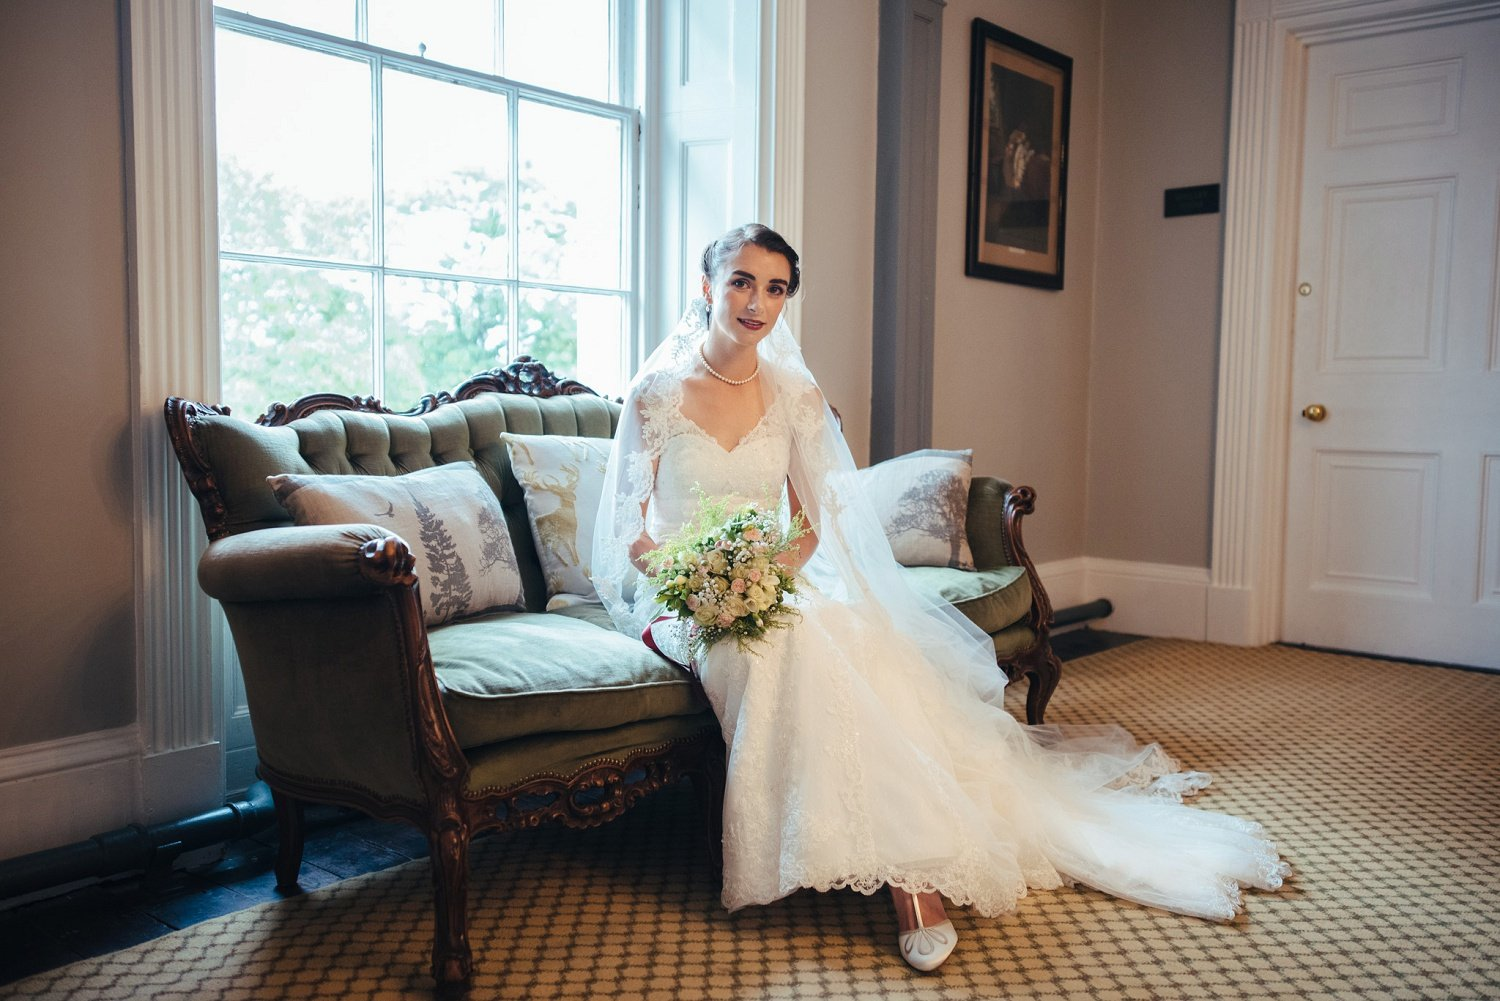 Bride portrait on vintage sofa at Glewstone Court